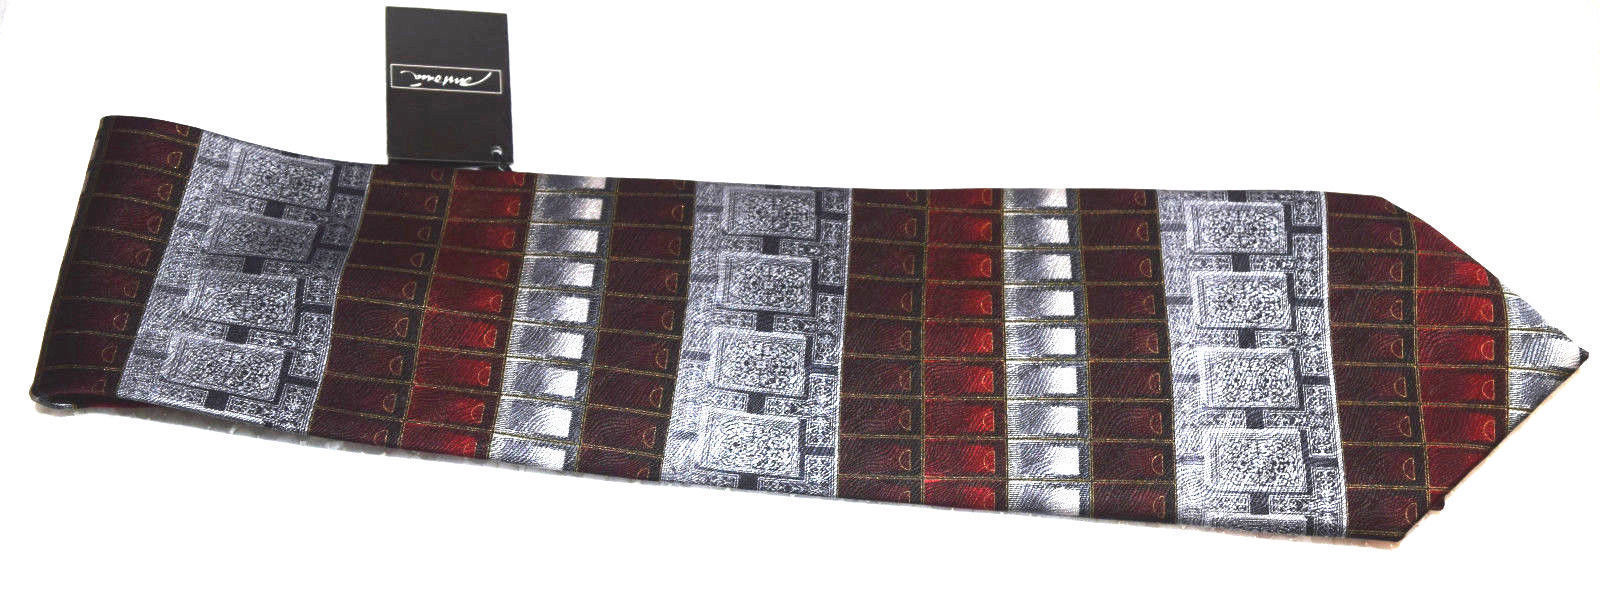 """NWT Antionia men's tie 59"""" X 4"""" Hand made tie 100% Silk New Very Nice Dry Clean image 5"""